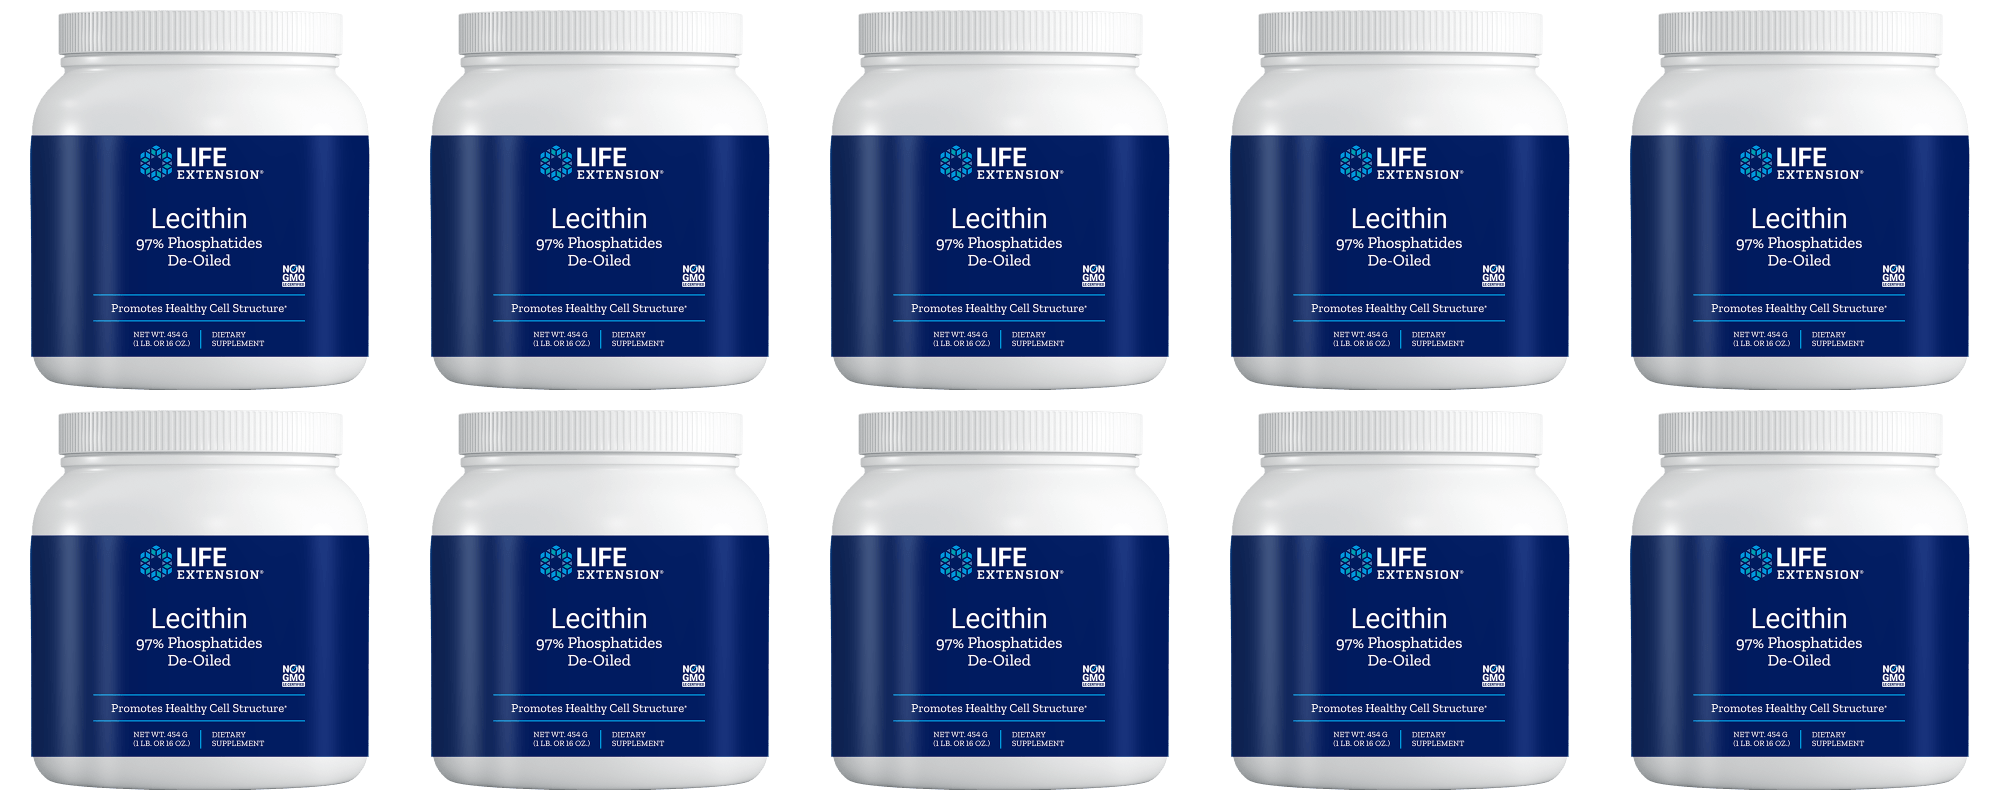 Life Extension Lecithin (97% Phosphatides De-oiled), 454 Grams, 10-pack